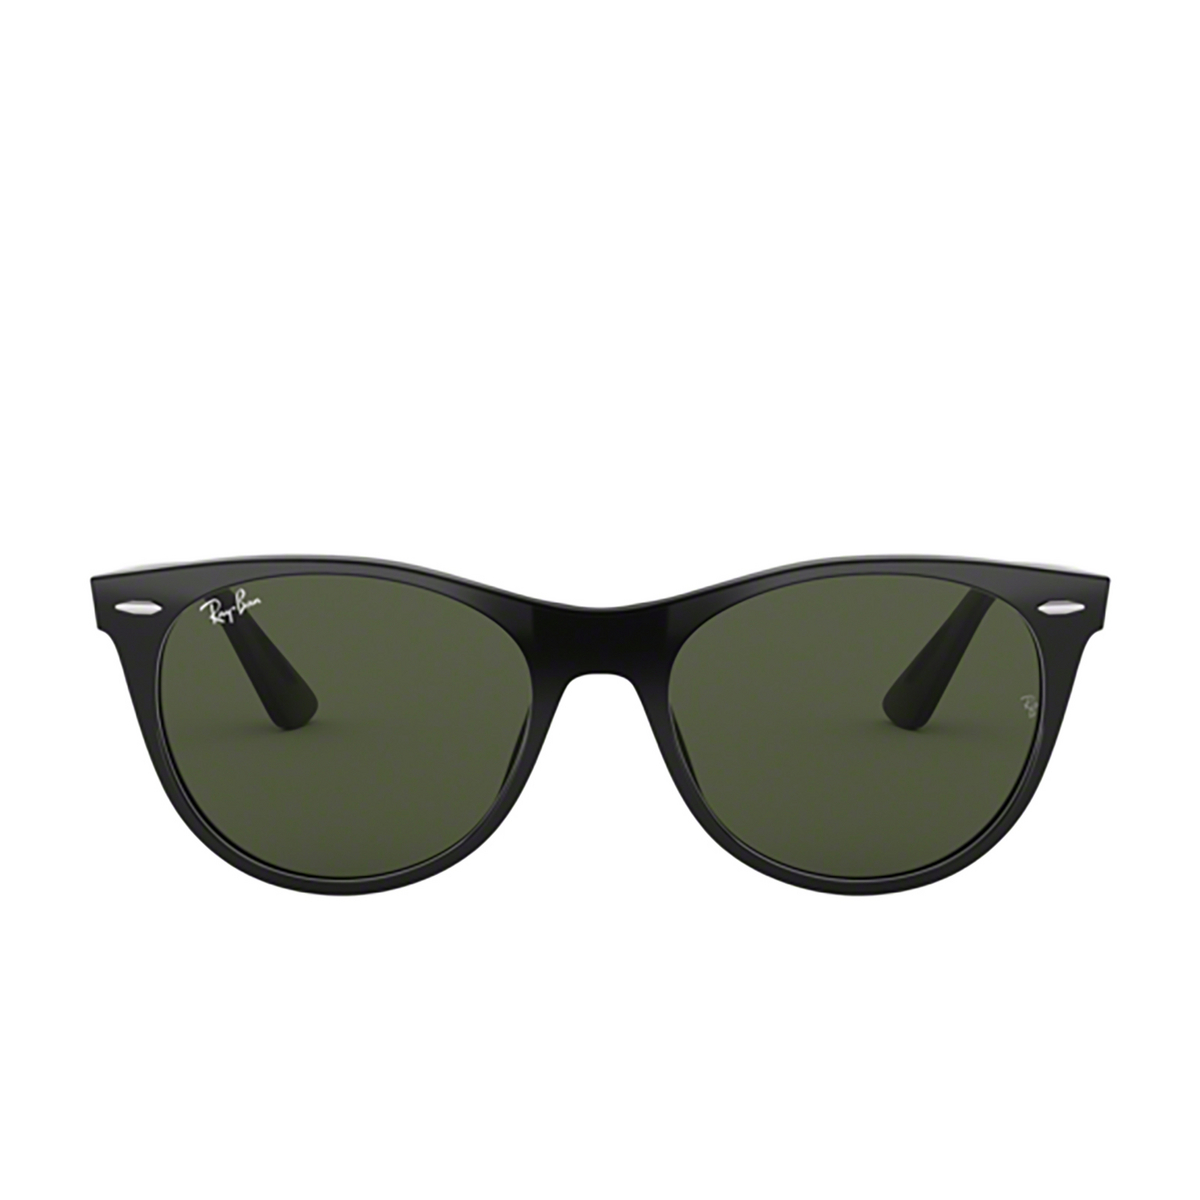 Ray-Ban® Square Sunglasses: Wayfarer Ii RB2185 color Black 901/31 - front view.